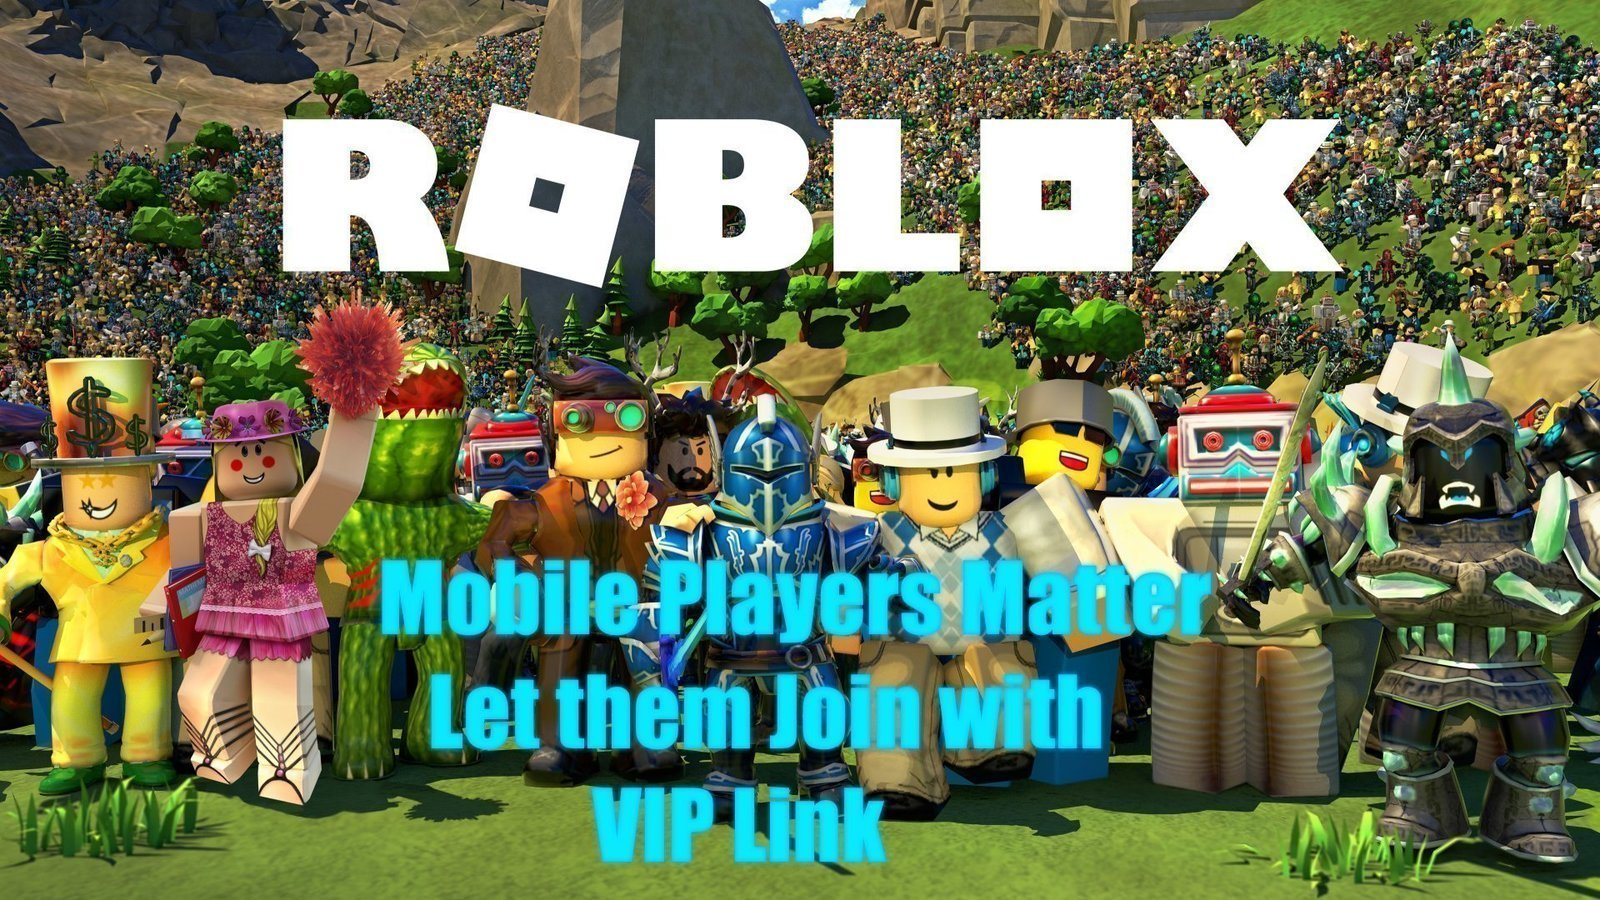 How To Change The Background On Roblox Mobile Petition Roblox Let Mobile Players Join Vip Server With The Link Change Org